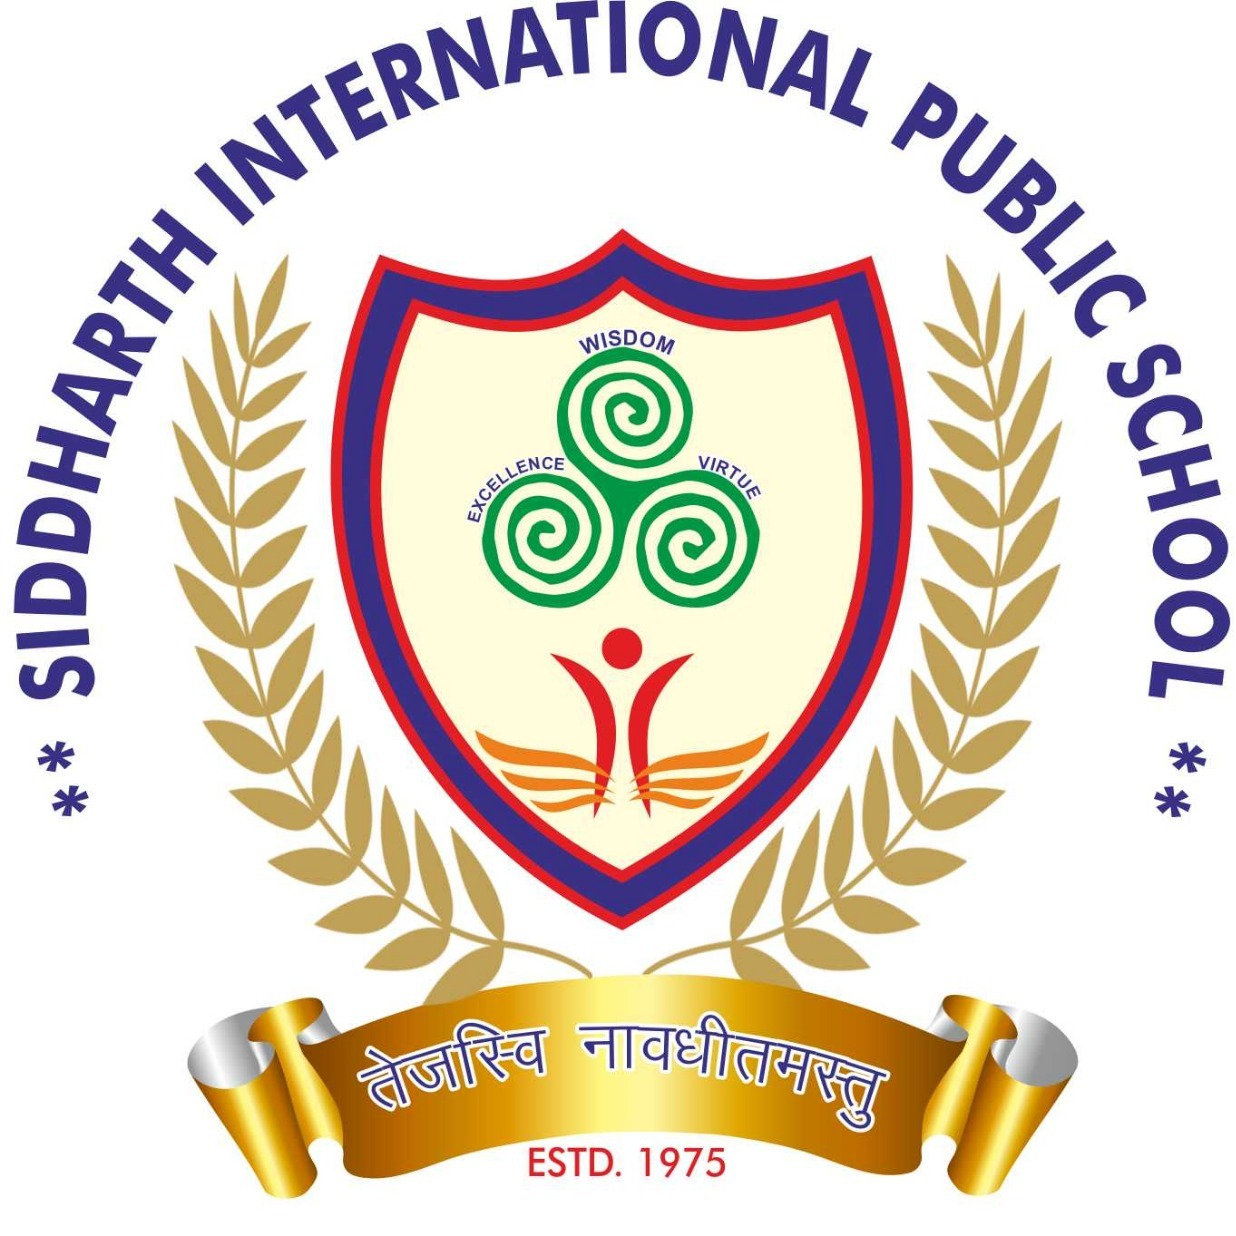 Siddharth International Public School, Main Wazirabad Road